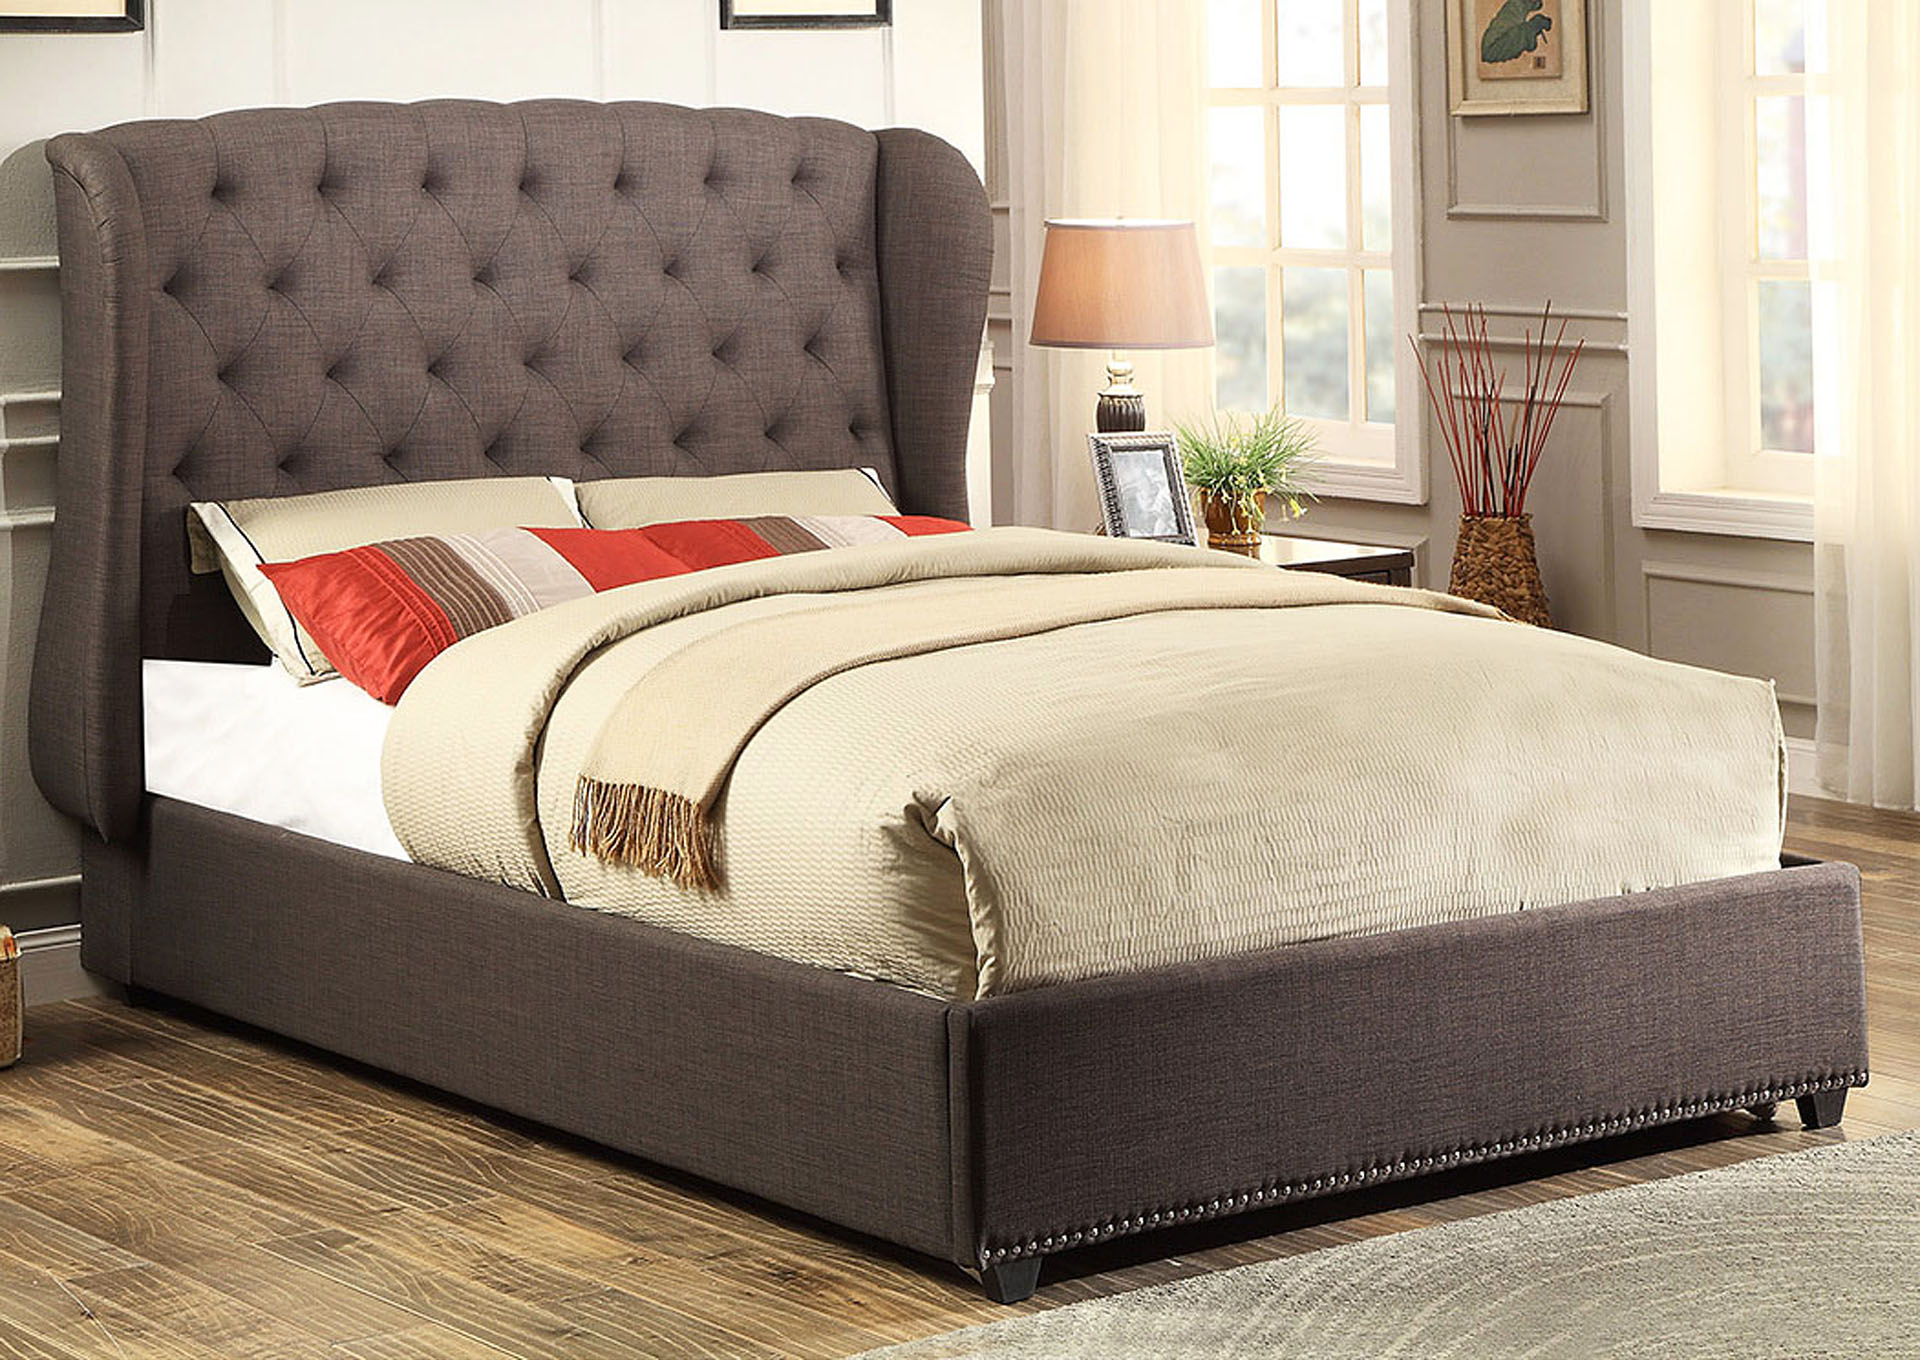 Chardon Dark Gray Upholstered Queen Bed,Homelegance